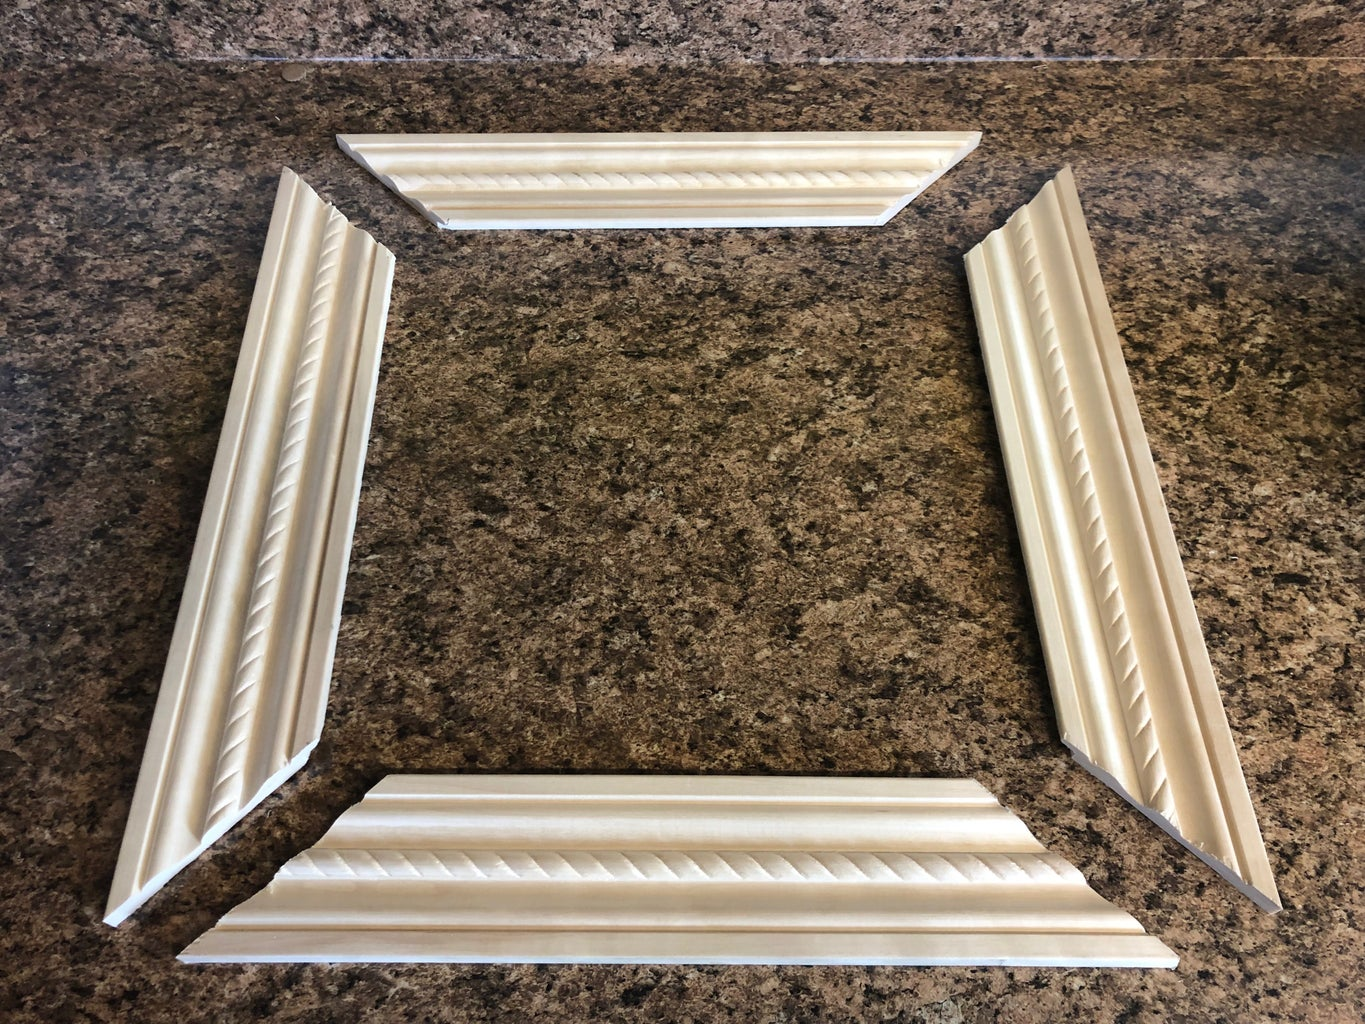 Building the Picture Frame